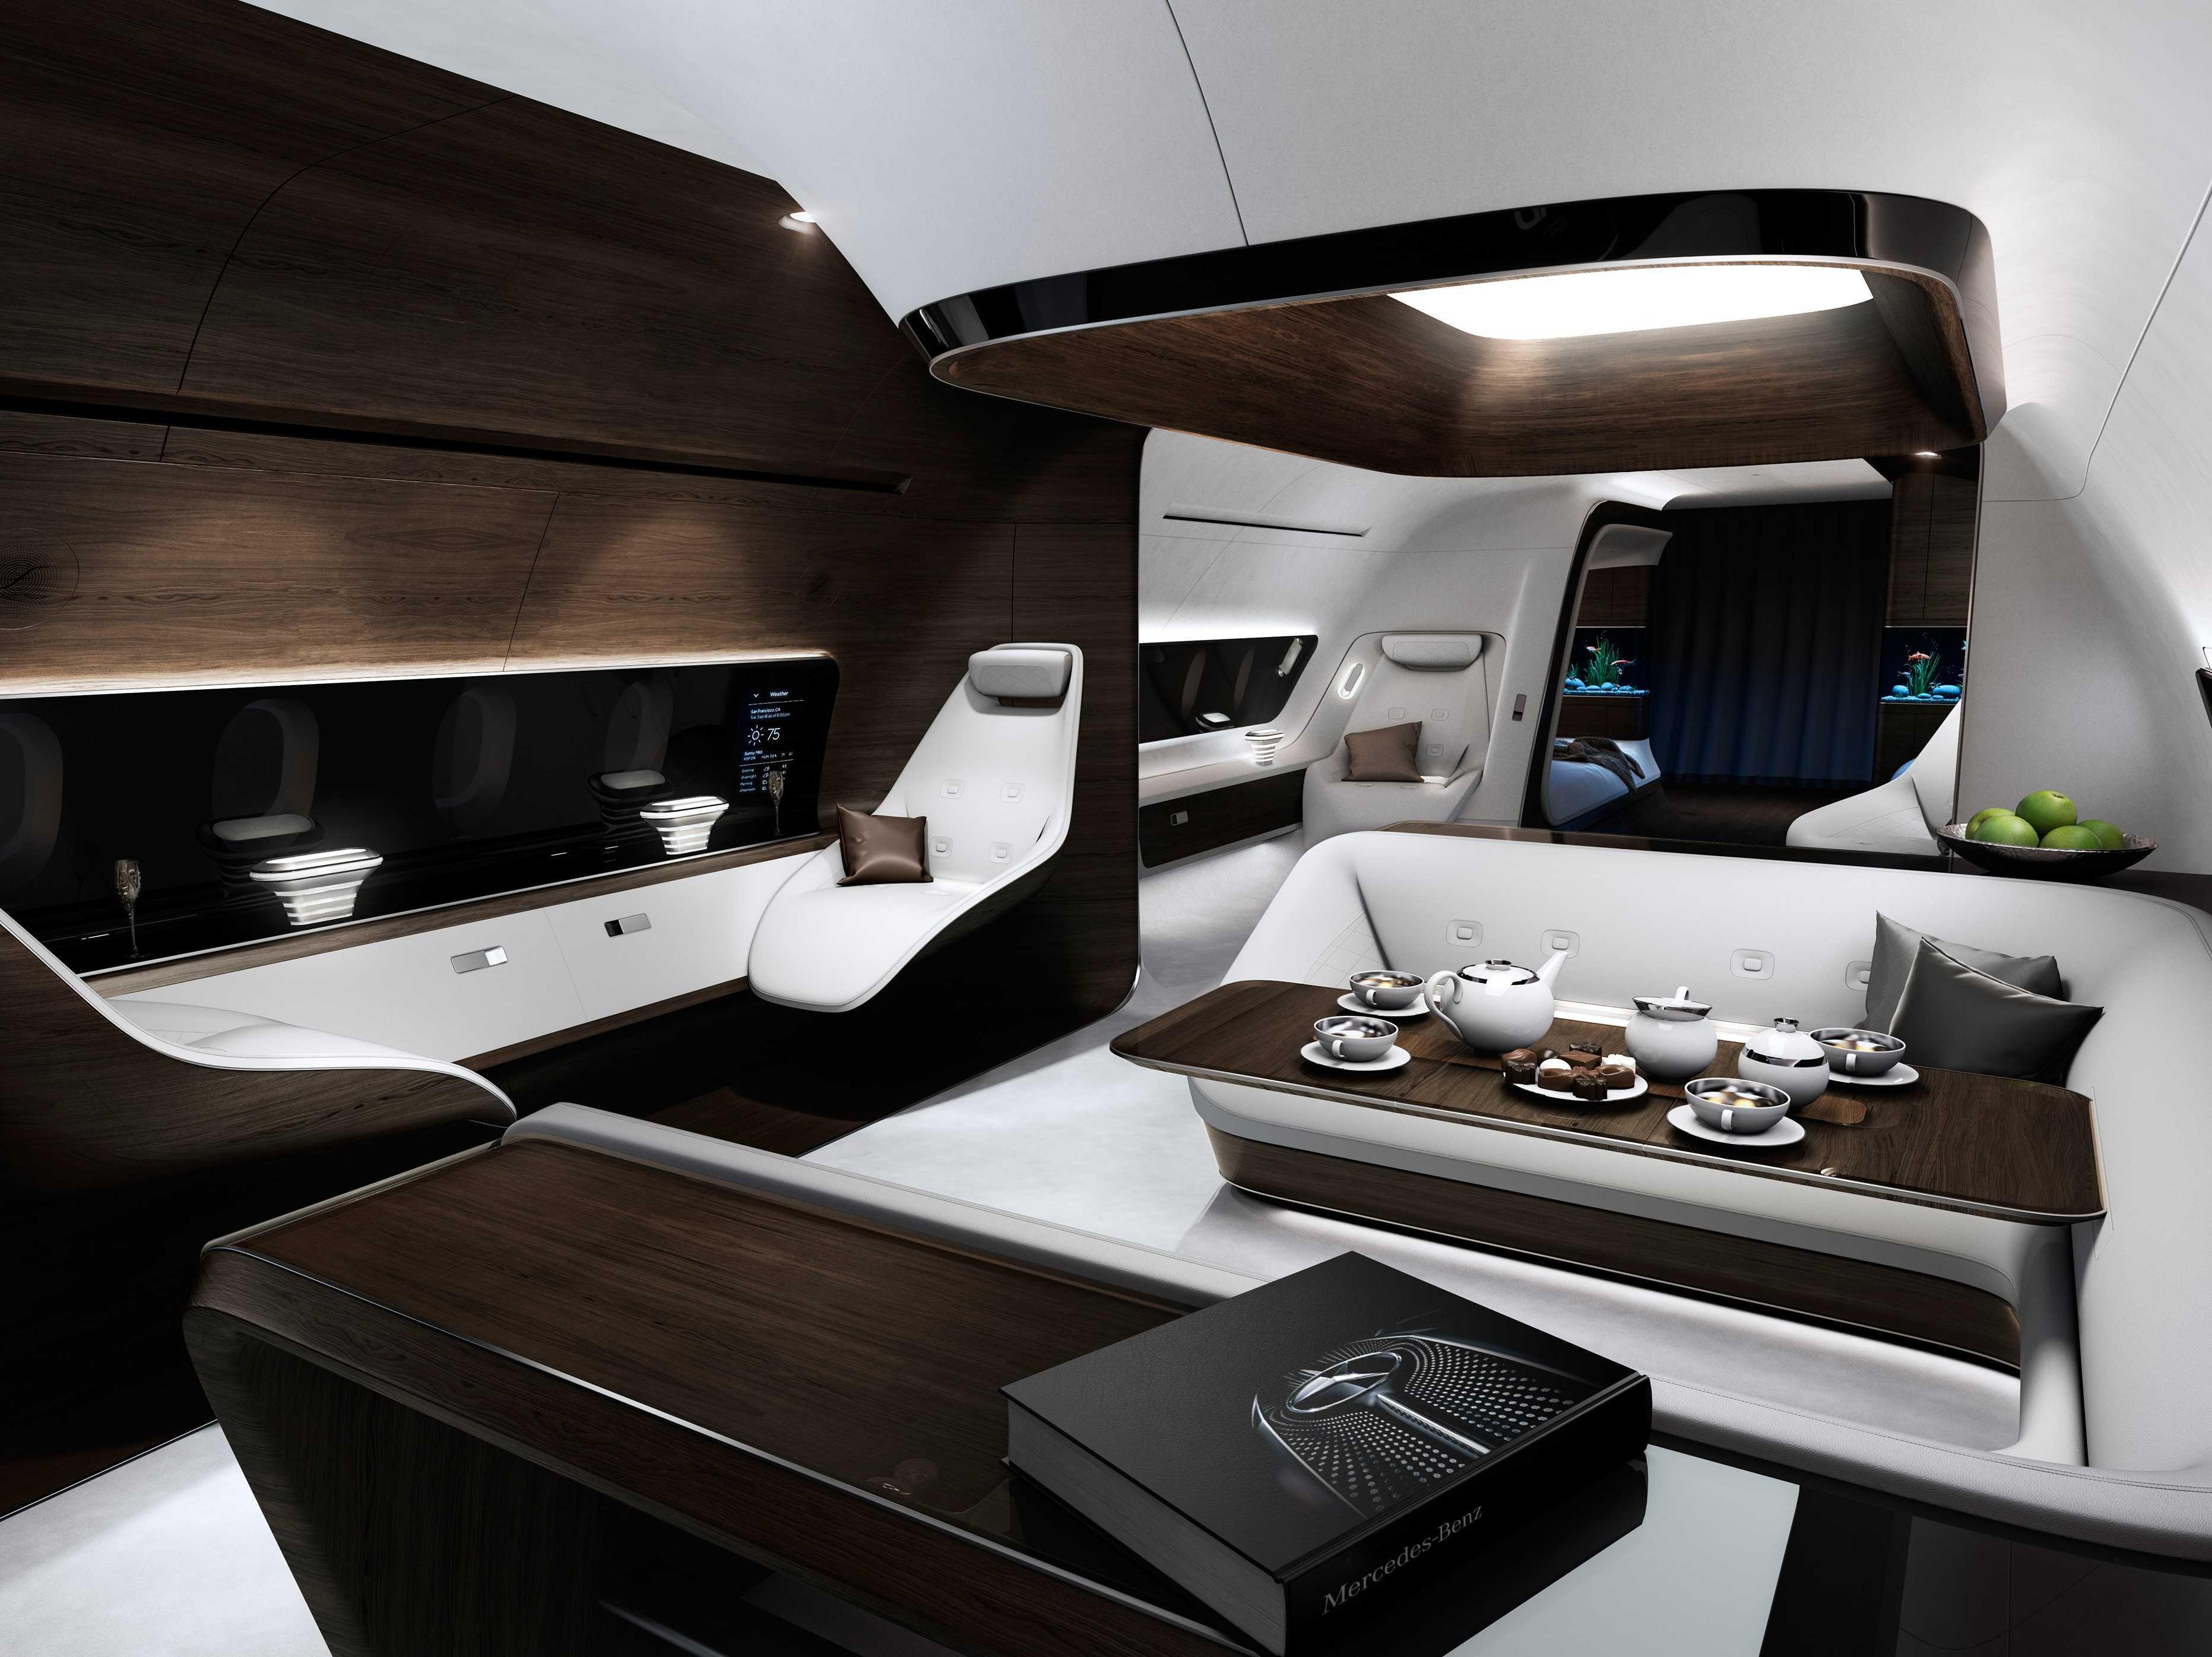 Mercedes-Benz and Lufthansa are designing the ultimate luxury private-jet interior